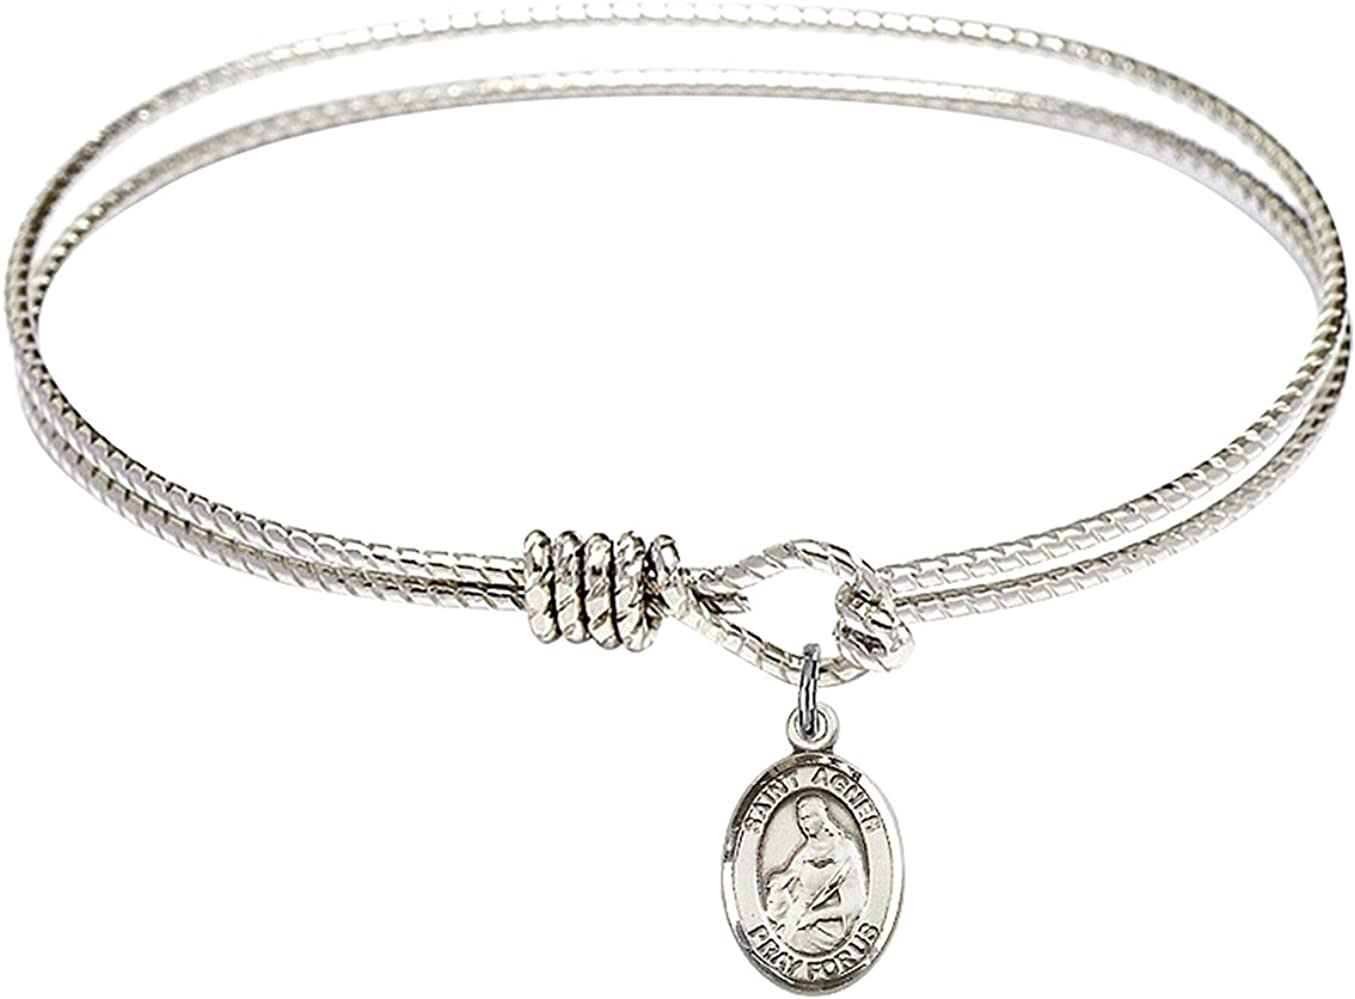 DiamondJewelryNY Eye Hook Bangle Bracelet with a St Valentine of Rome Charm.